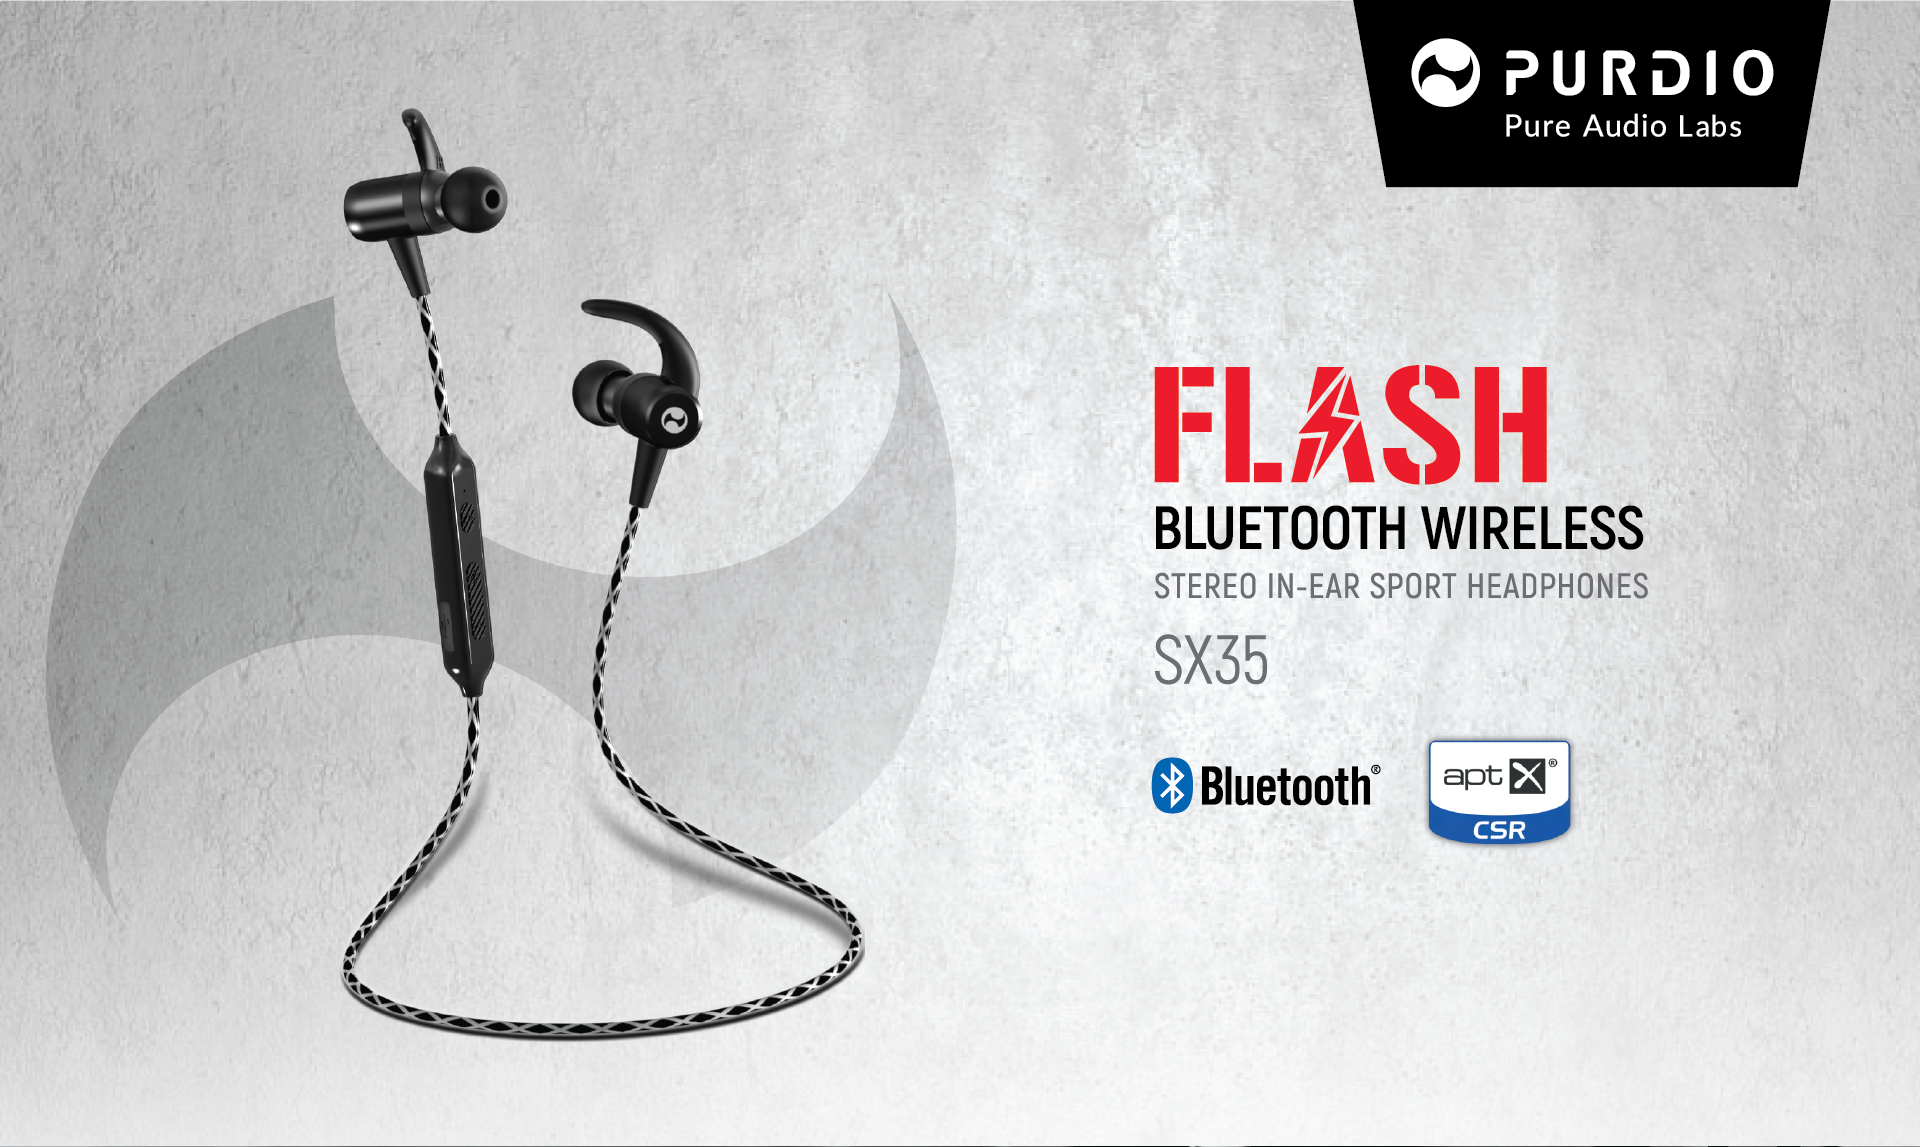 Purdio Flash Bluetooth Wireless In ear Sport Headphones, one of the best earphones